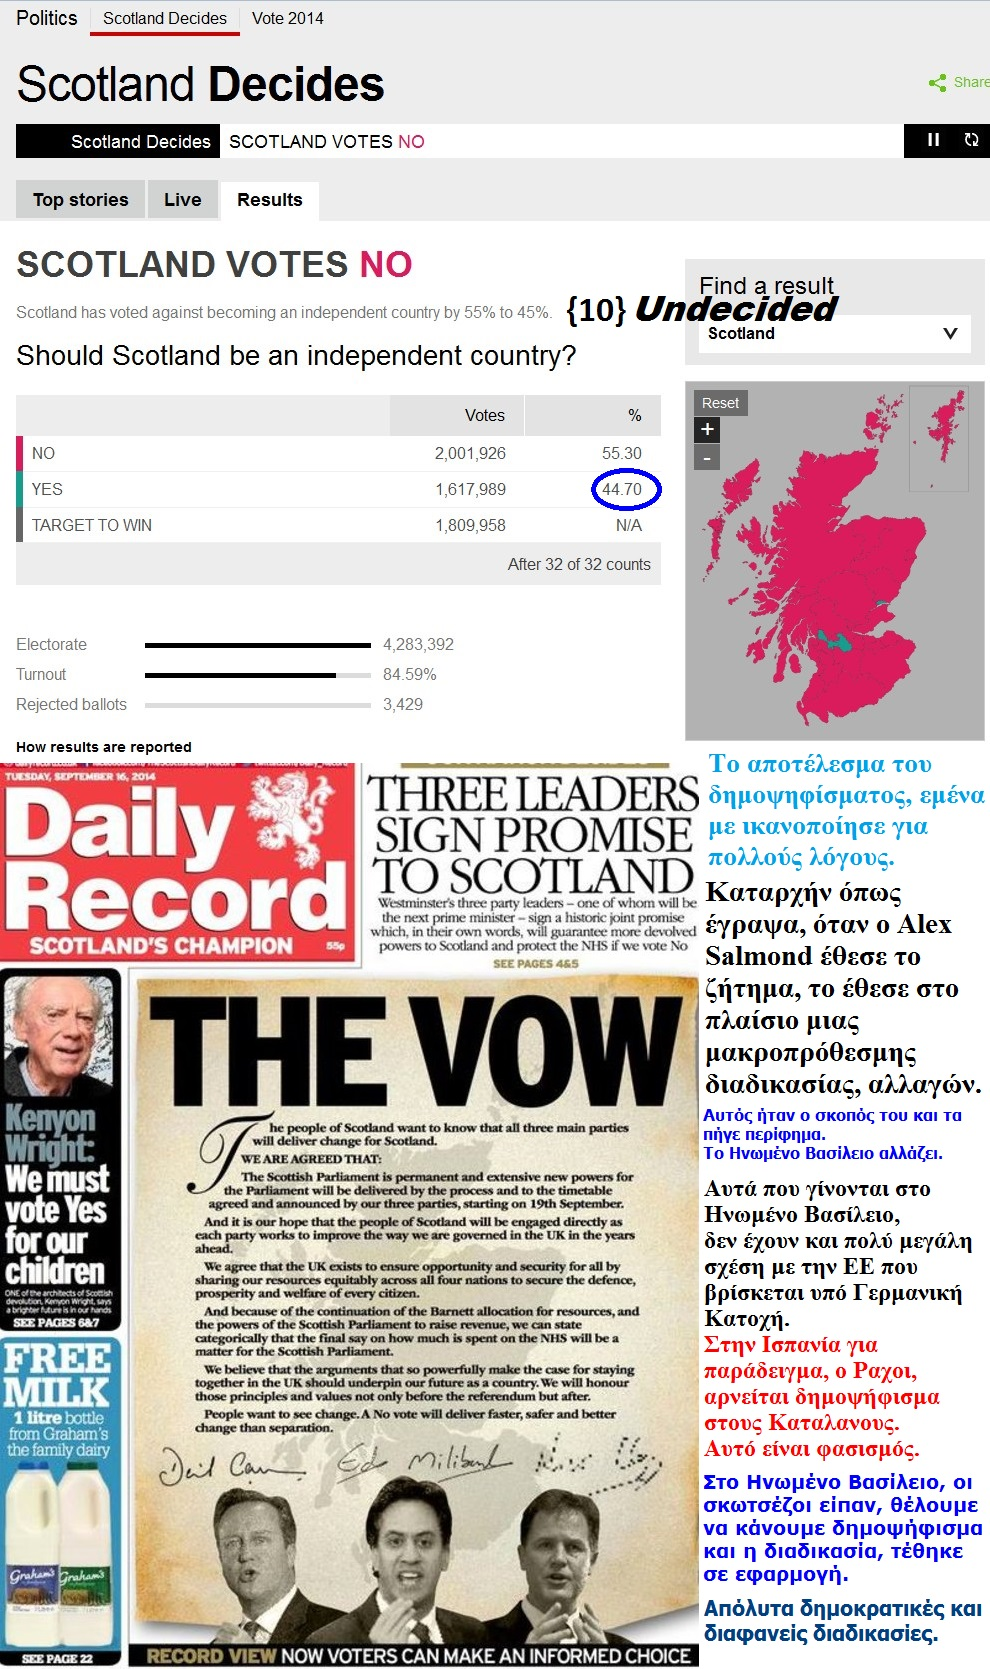 SCOTLAND SCOTTISH INDEPENDENCE DECIDES RESULTS 04 190914